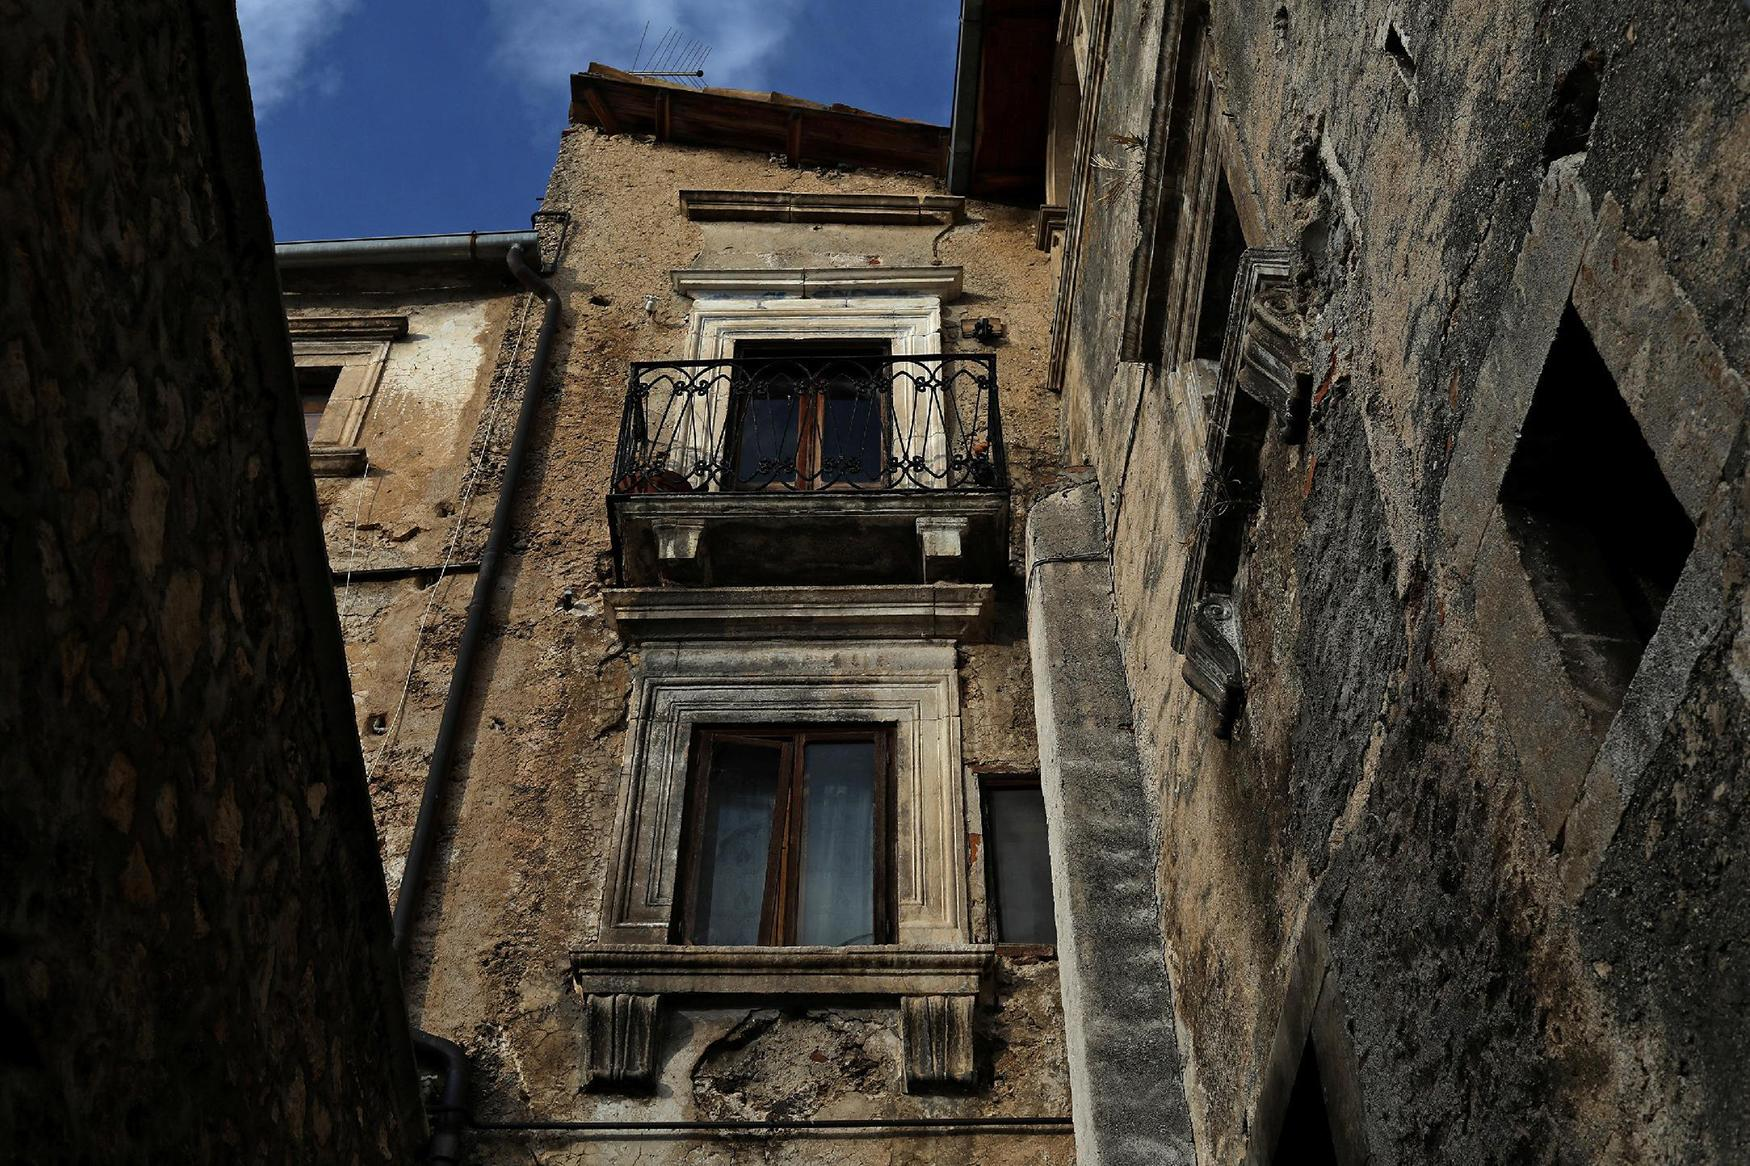 <p>A building is seen near the old center of the town of Castelvecchio in the province of L'Aquila in Abruzzo, inside the national park of the Gran Sasso e Monti della Laga, Italy, September 11, 2016. (Photo: Siegfried Modola/Reuters) </p>